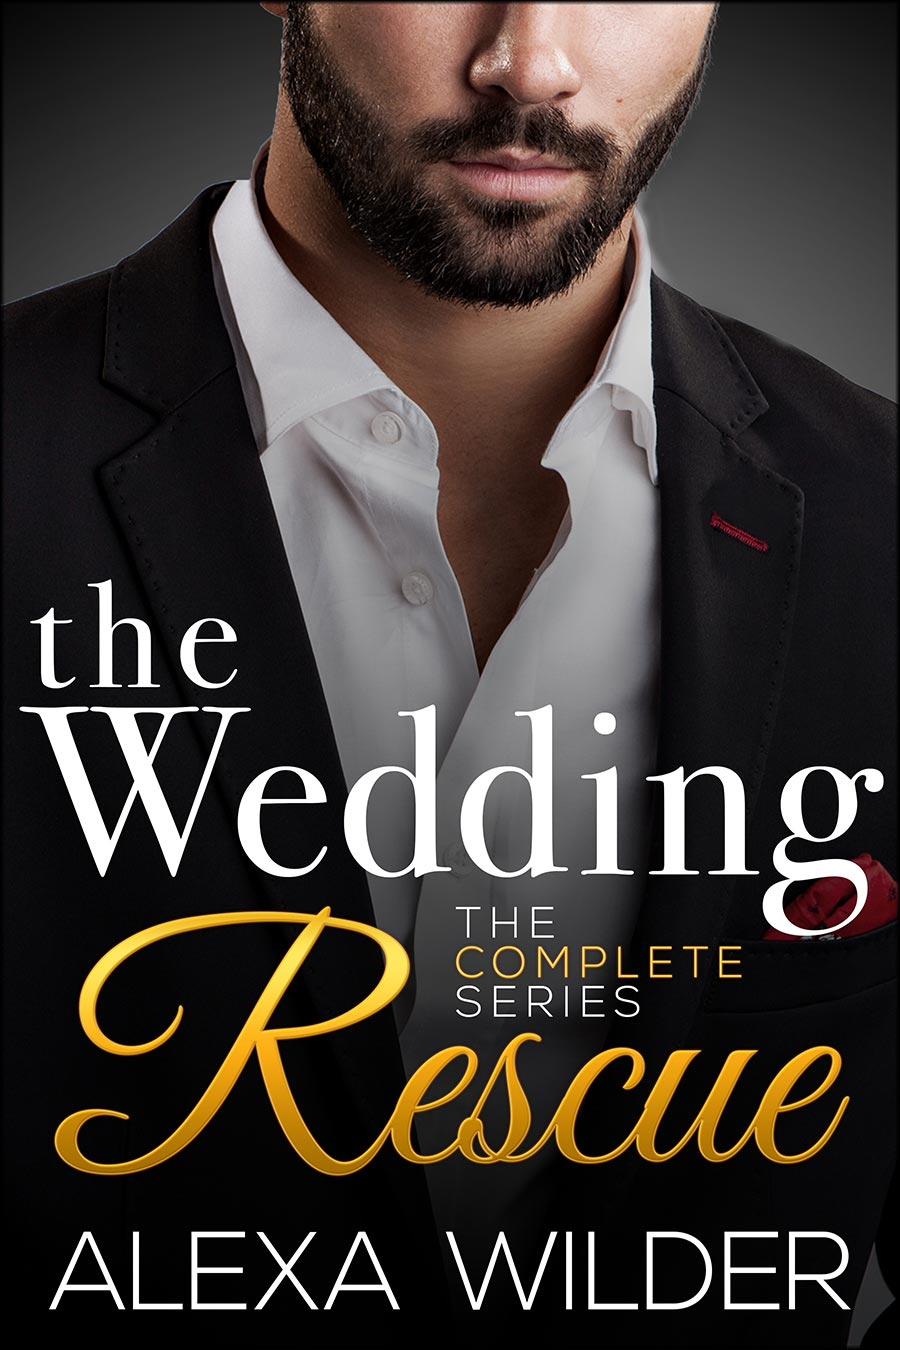 The-Wedding-Rescue---the-complete-series---high-quality---450-DPI.jpg